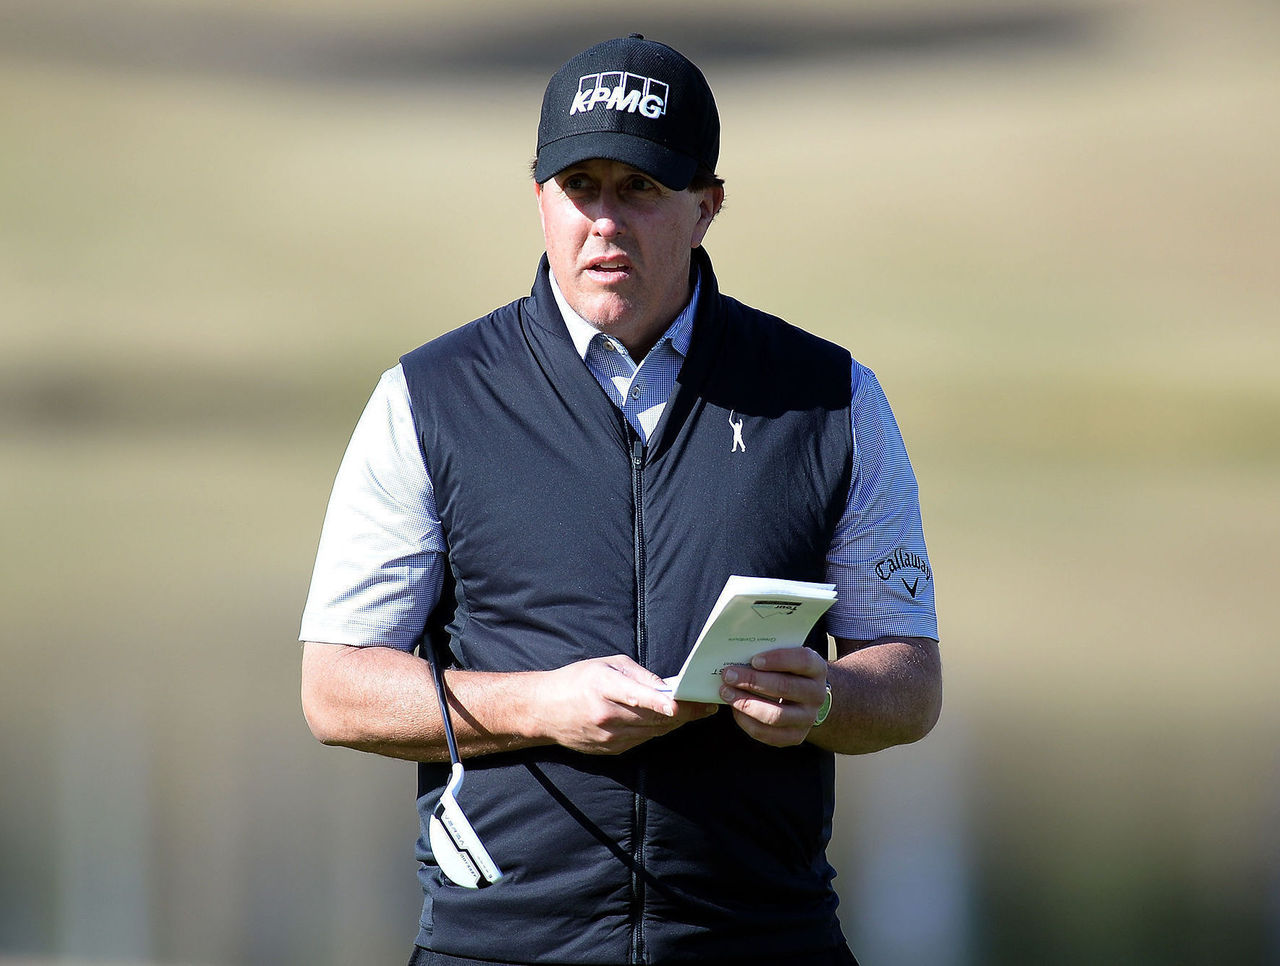 Cropped 2017 01 20t215618z 187041763 nocid rtrmadp 3 pga careerbuilder challenge second round